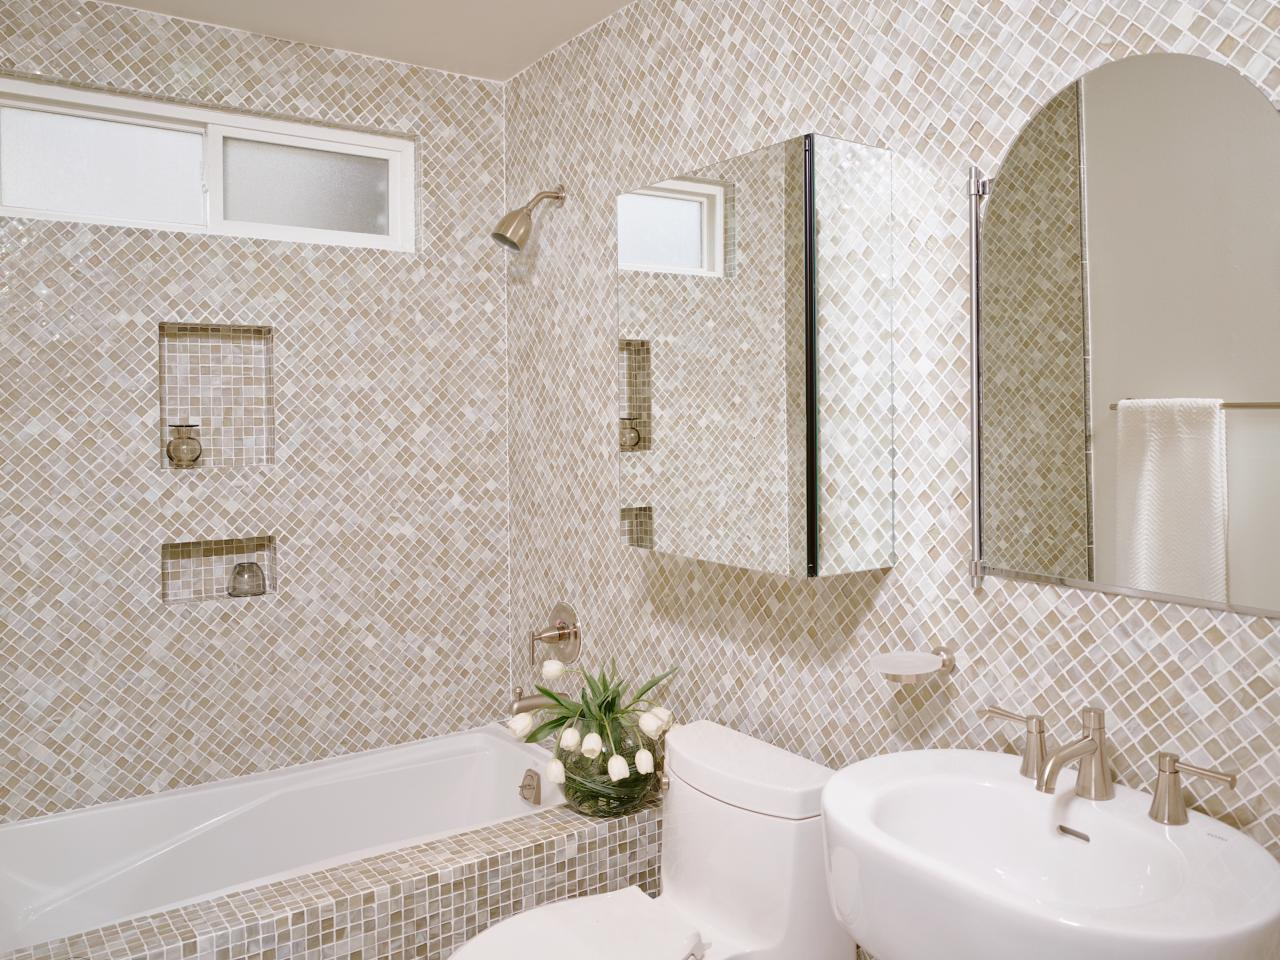 34 great pictures and ideas of neutral bathroom tile - Bathroom tile design ideas for small bathrooms ...